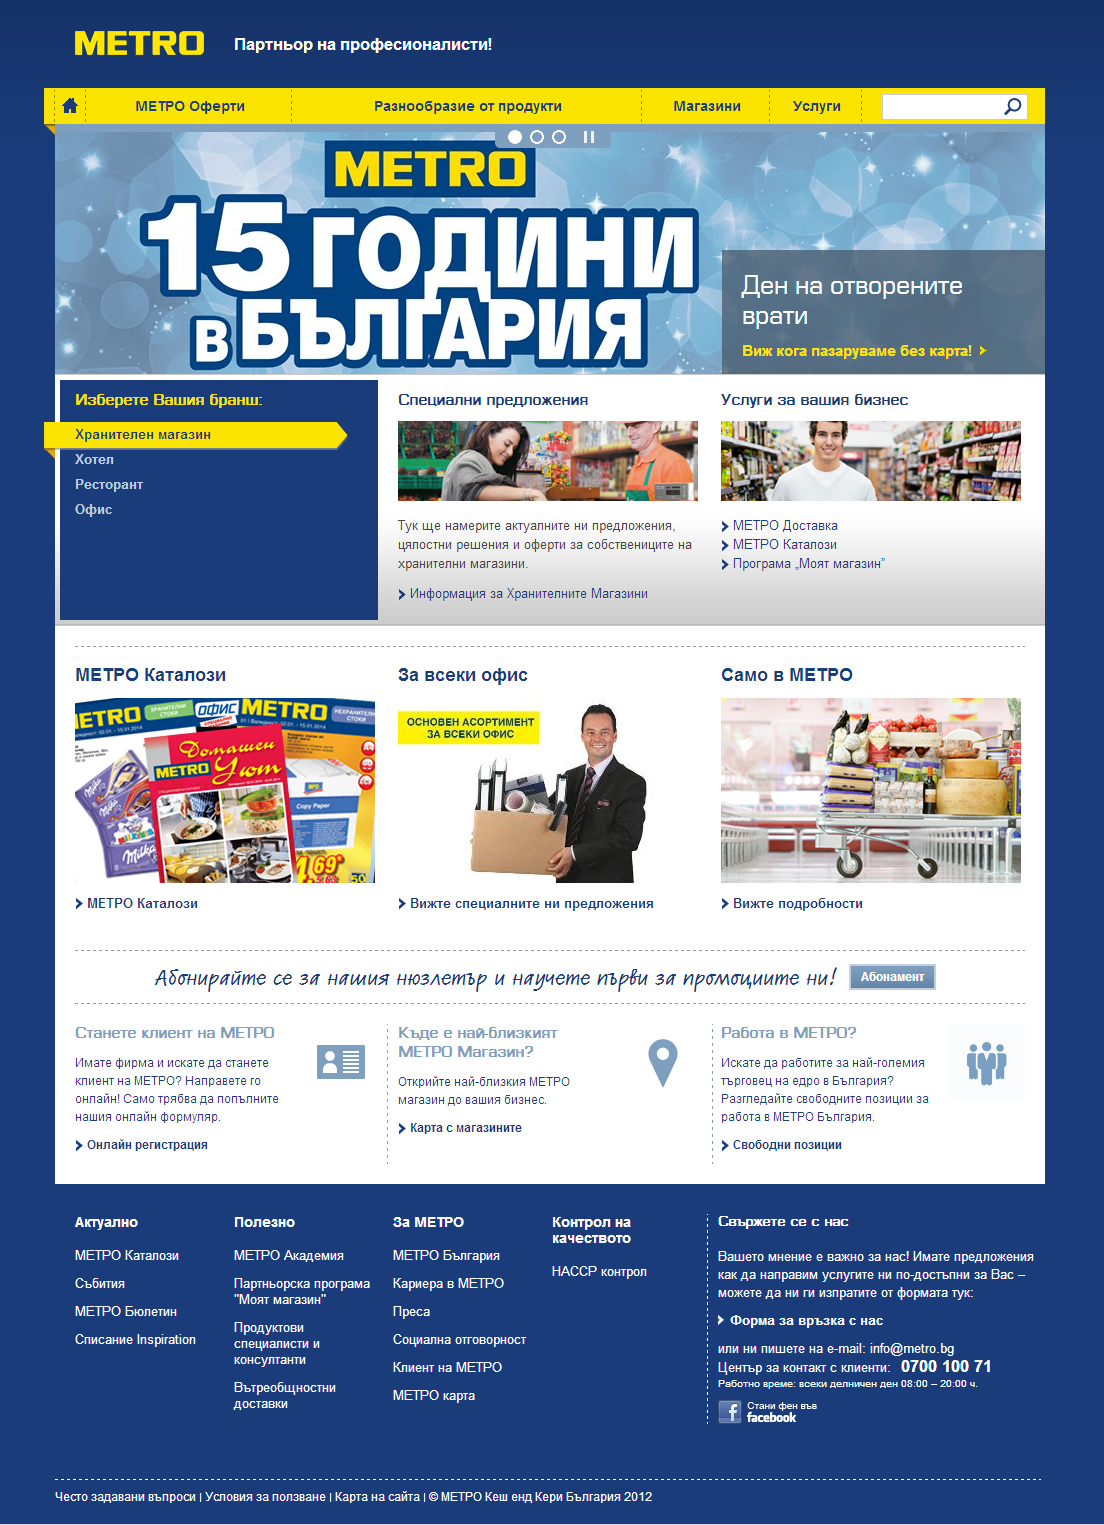 Website for METRO Bulgaria, METRO - Web Sites, Stenik